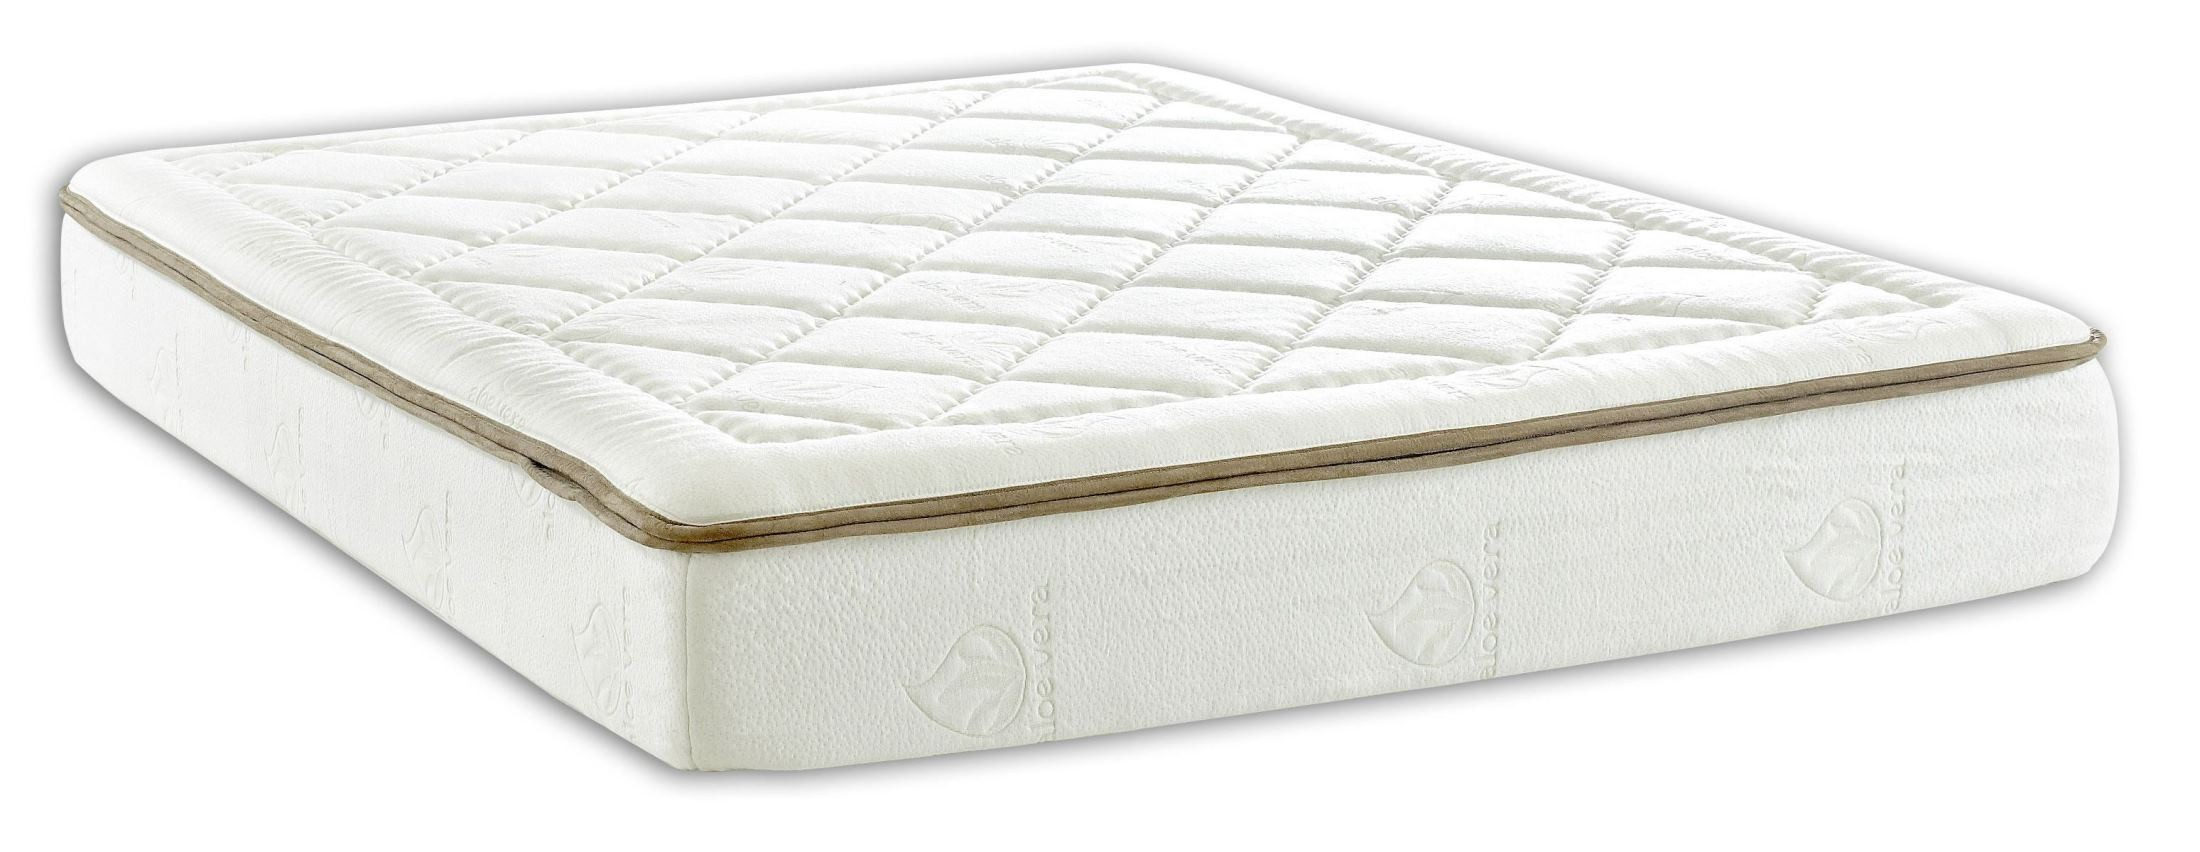 Dream weaver 10 memory foam king mattress from klaussner drmwvrkkmat coleman furniture Memory foam king mattress